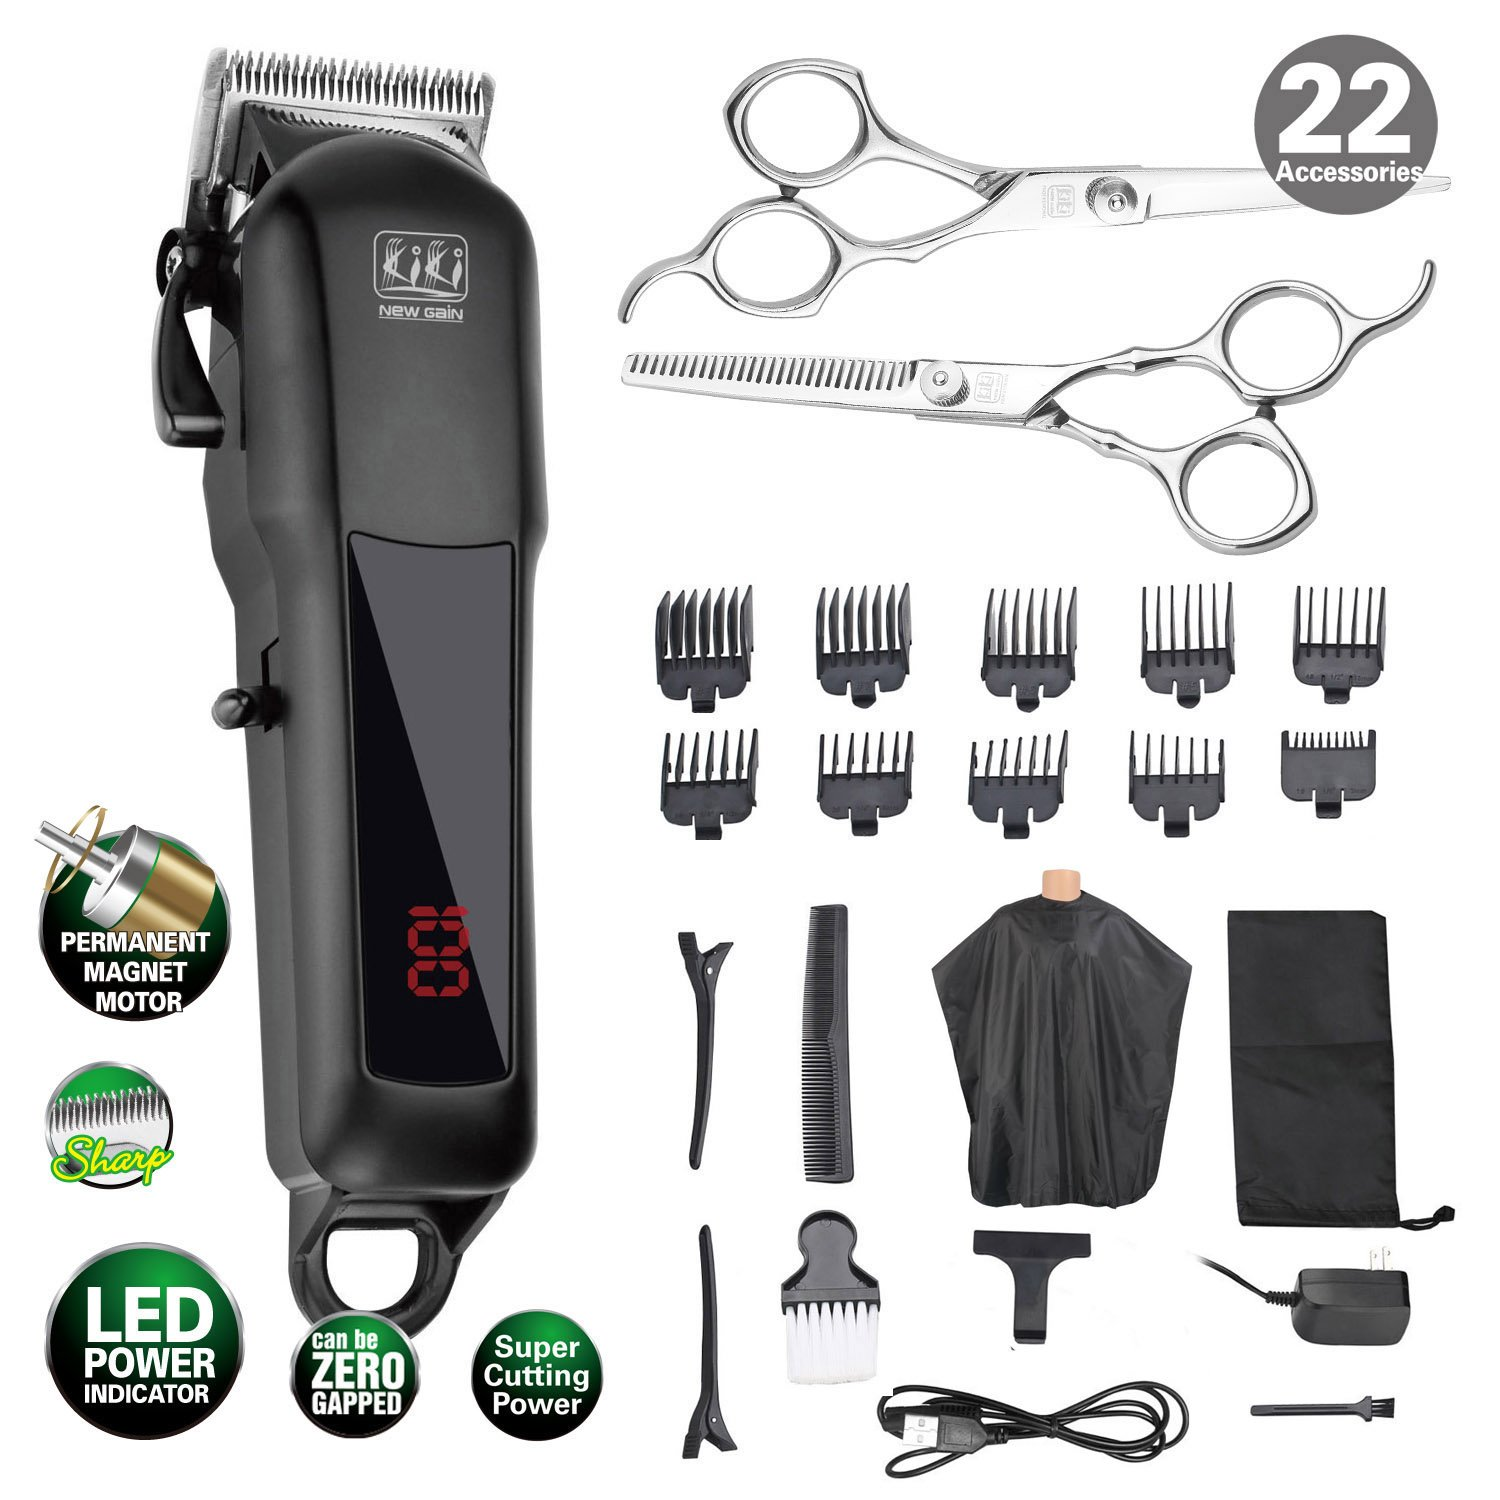 KIKI Cordless Rechargeable Hair Clippers Set Hair cutter LED display Professional Super Cutting Power, Lithium Battery(2000MAh) 22 accessories